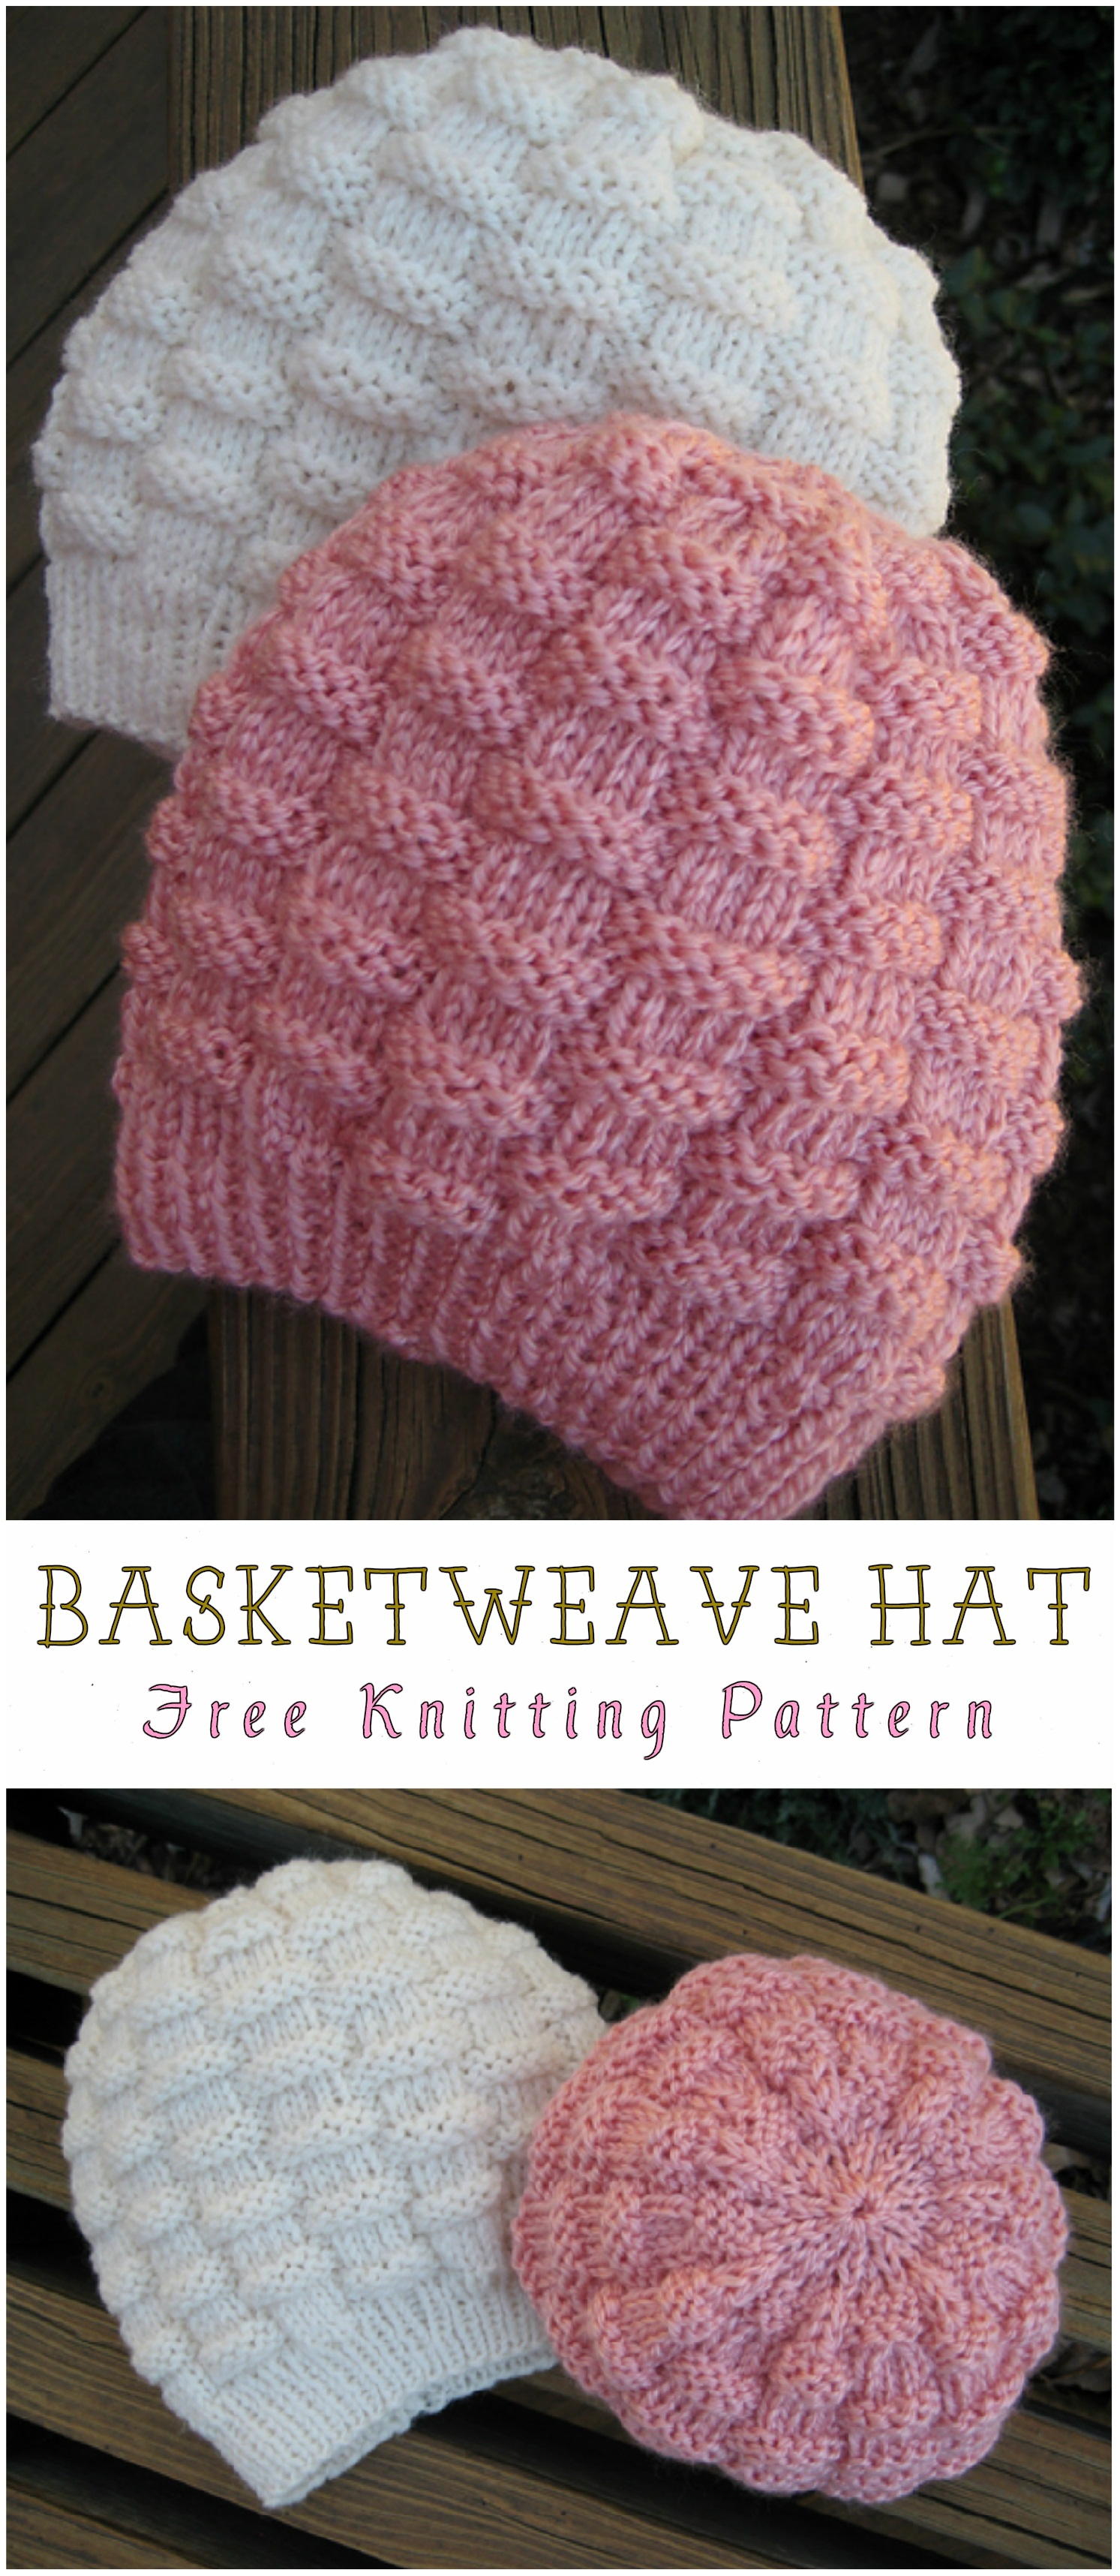 Basketweave Hat Free Knitting Pattern - Yarnandhooks